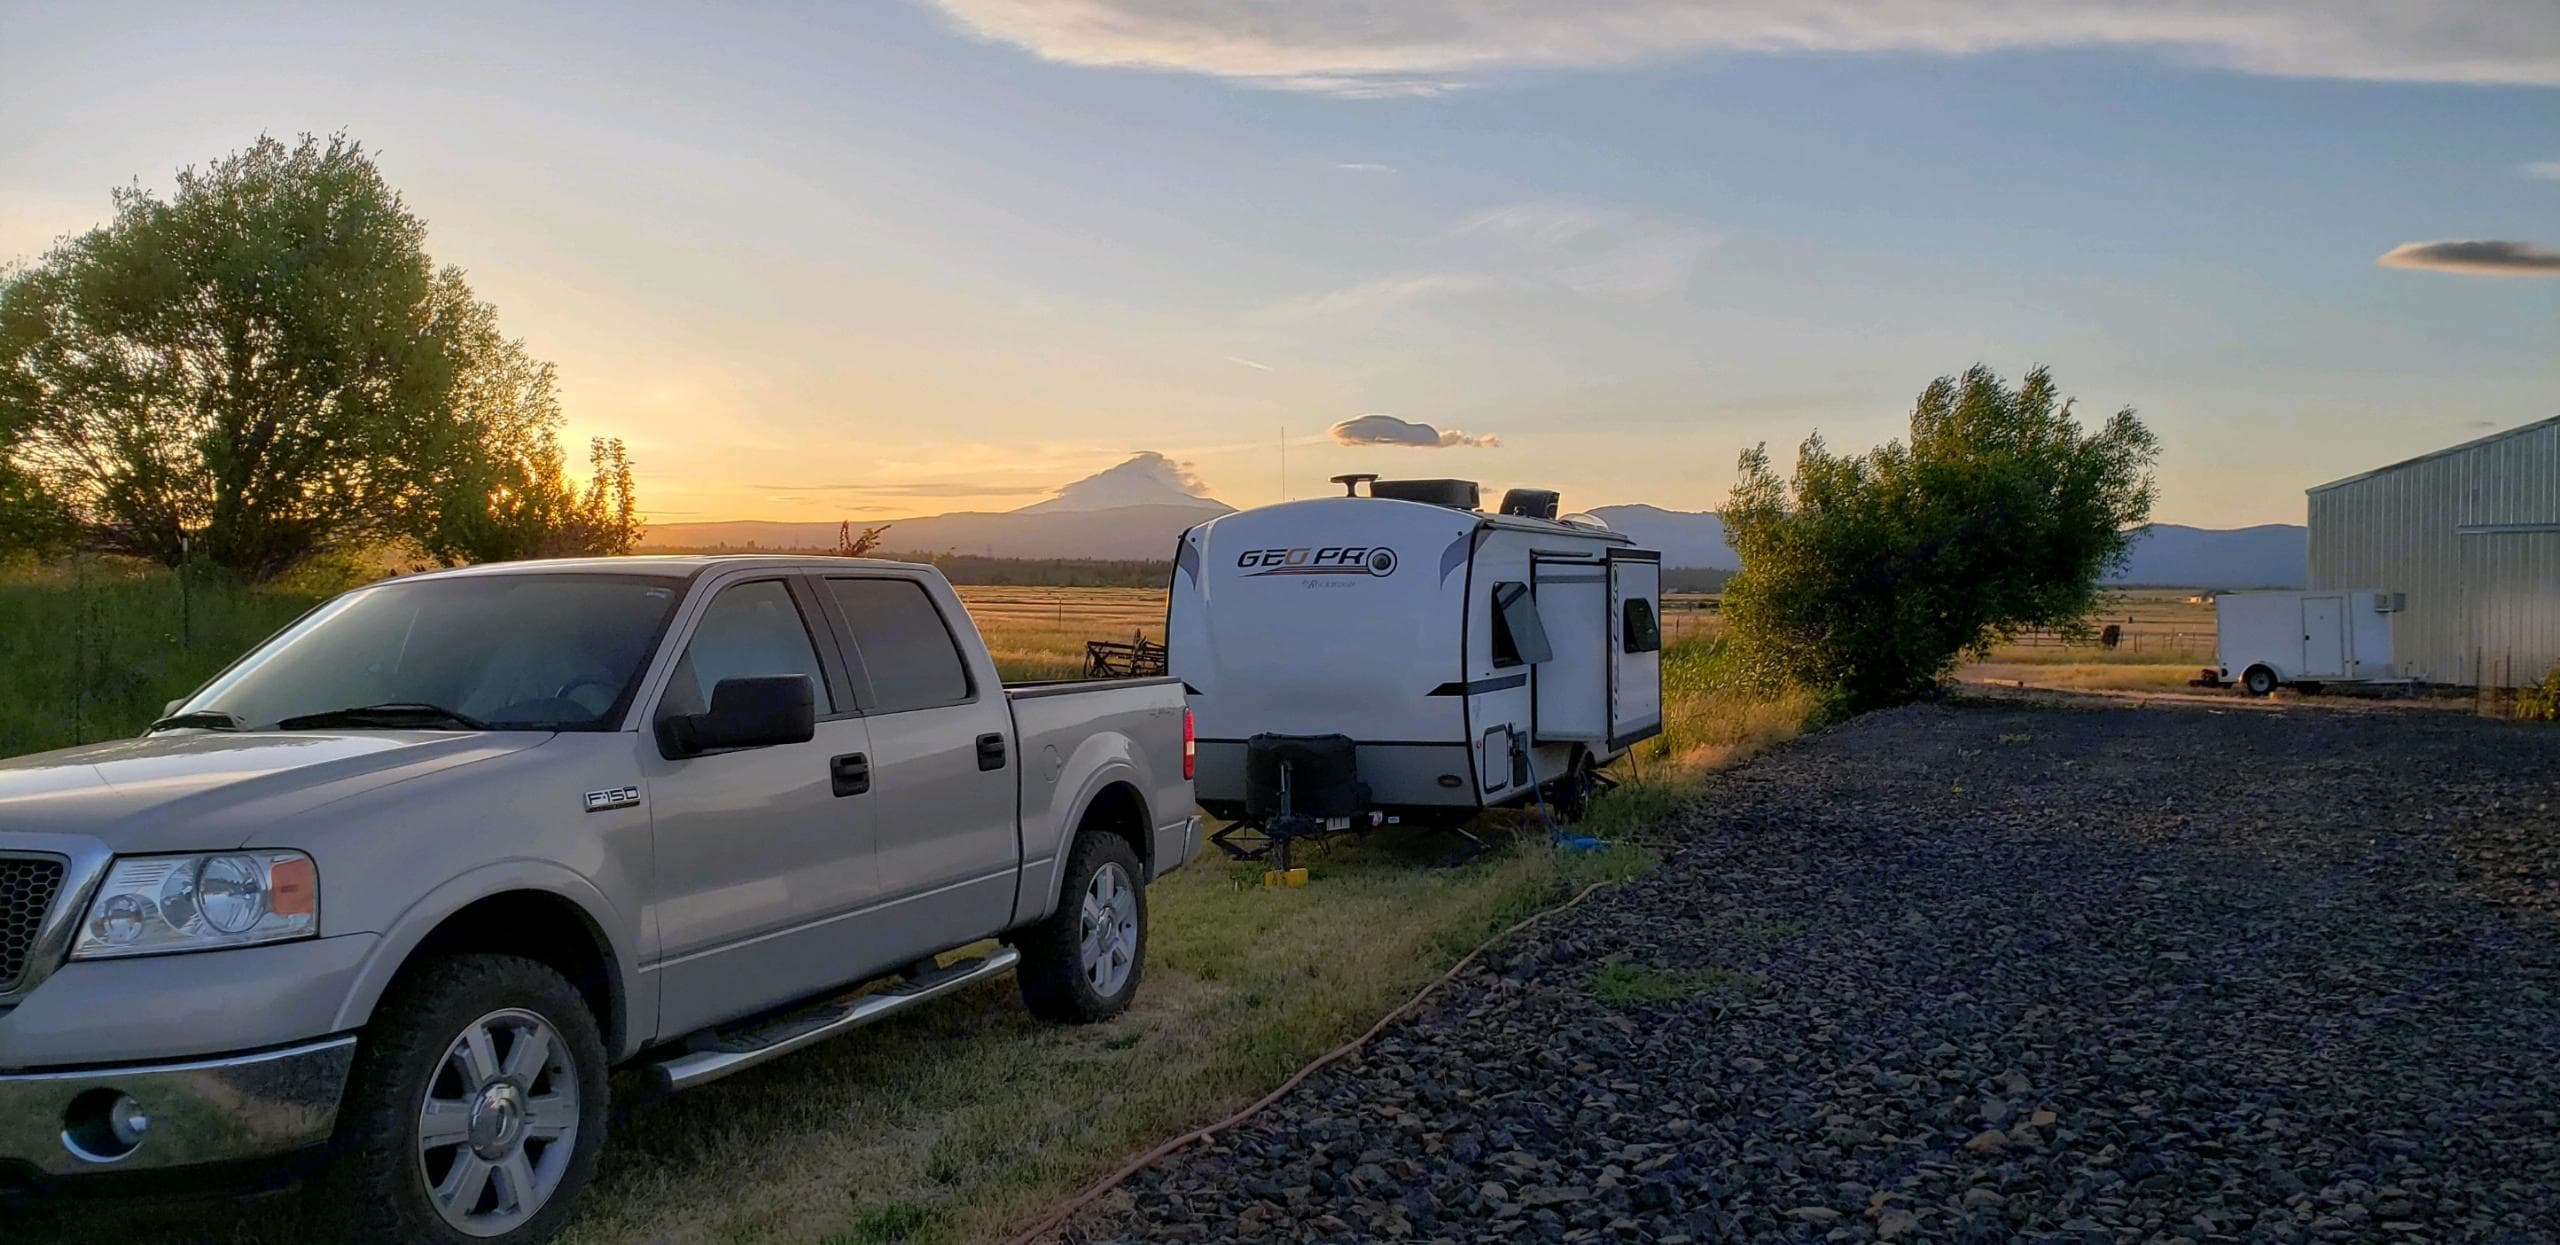 Short Tail Farms. Maupin, OR.. Other Other 2018